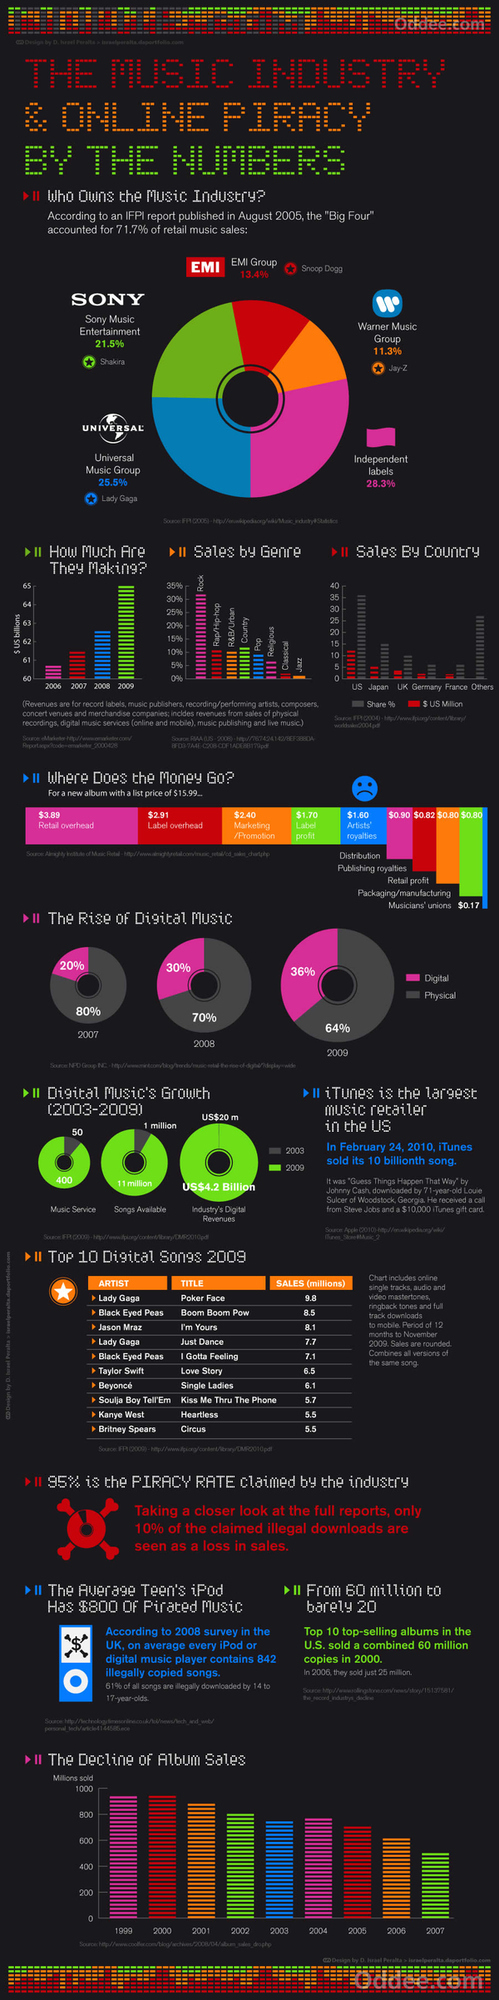 The Music Industry: An Infographic